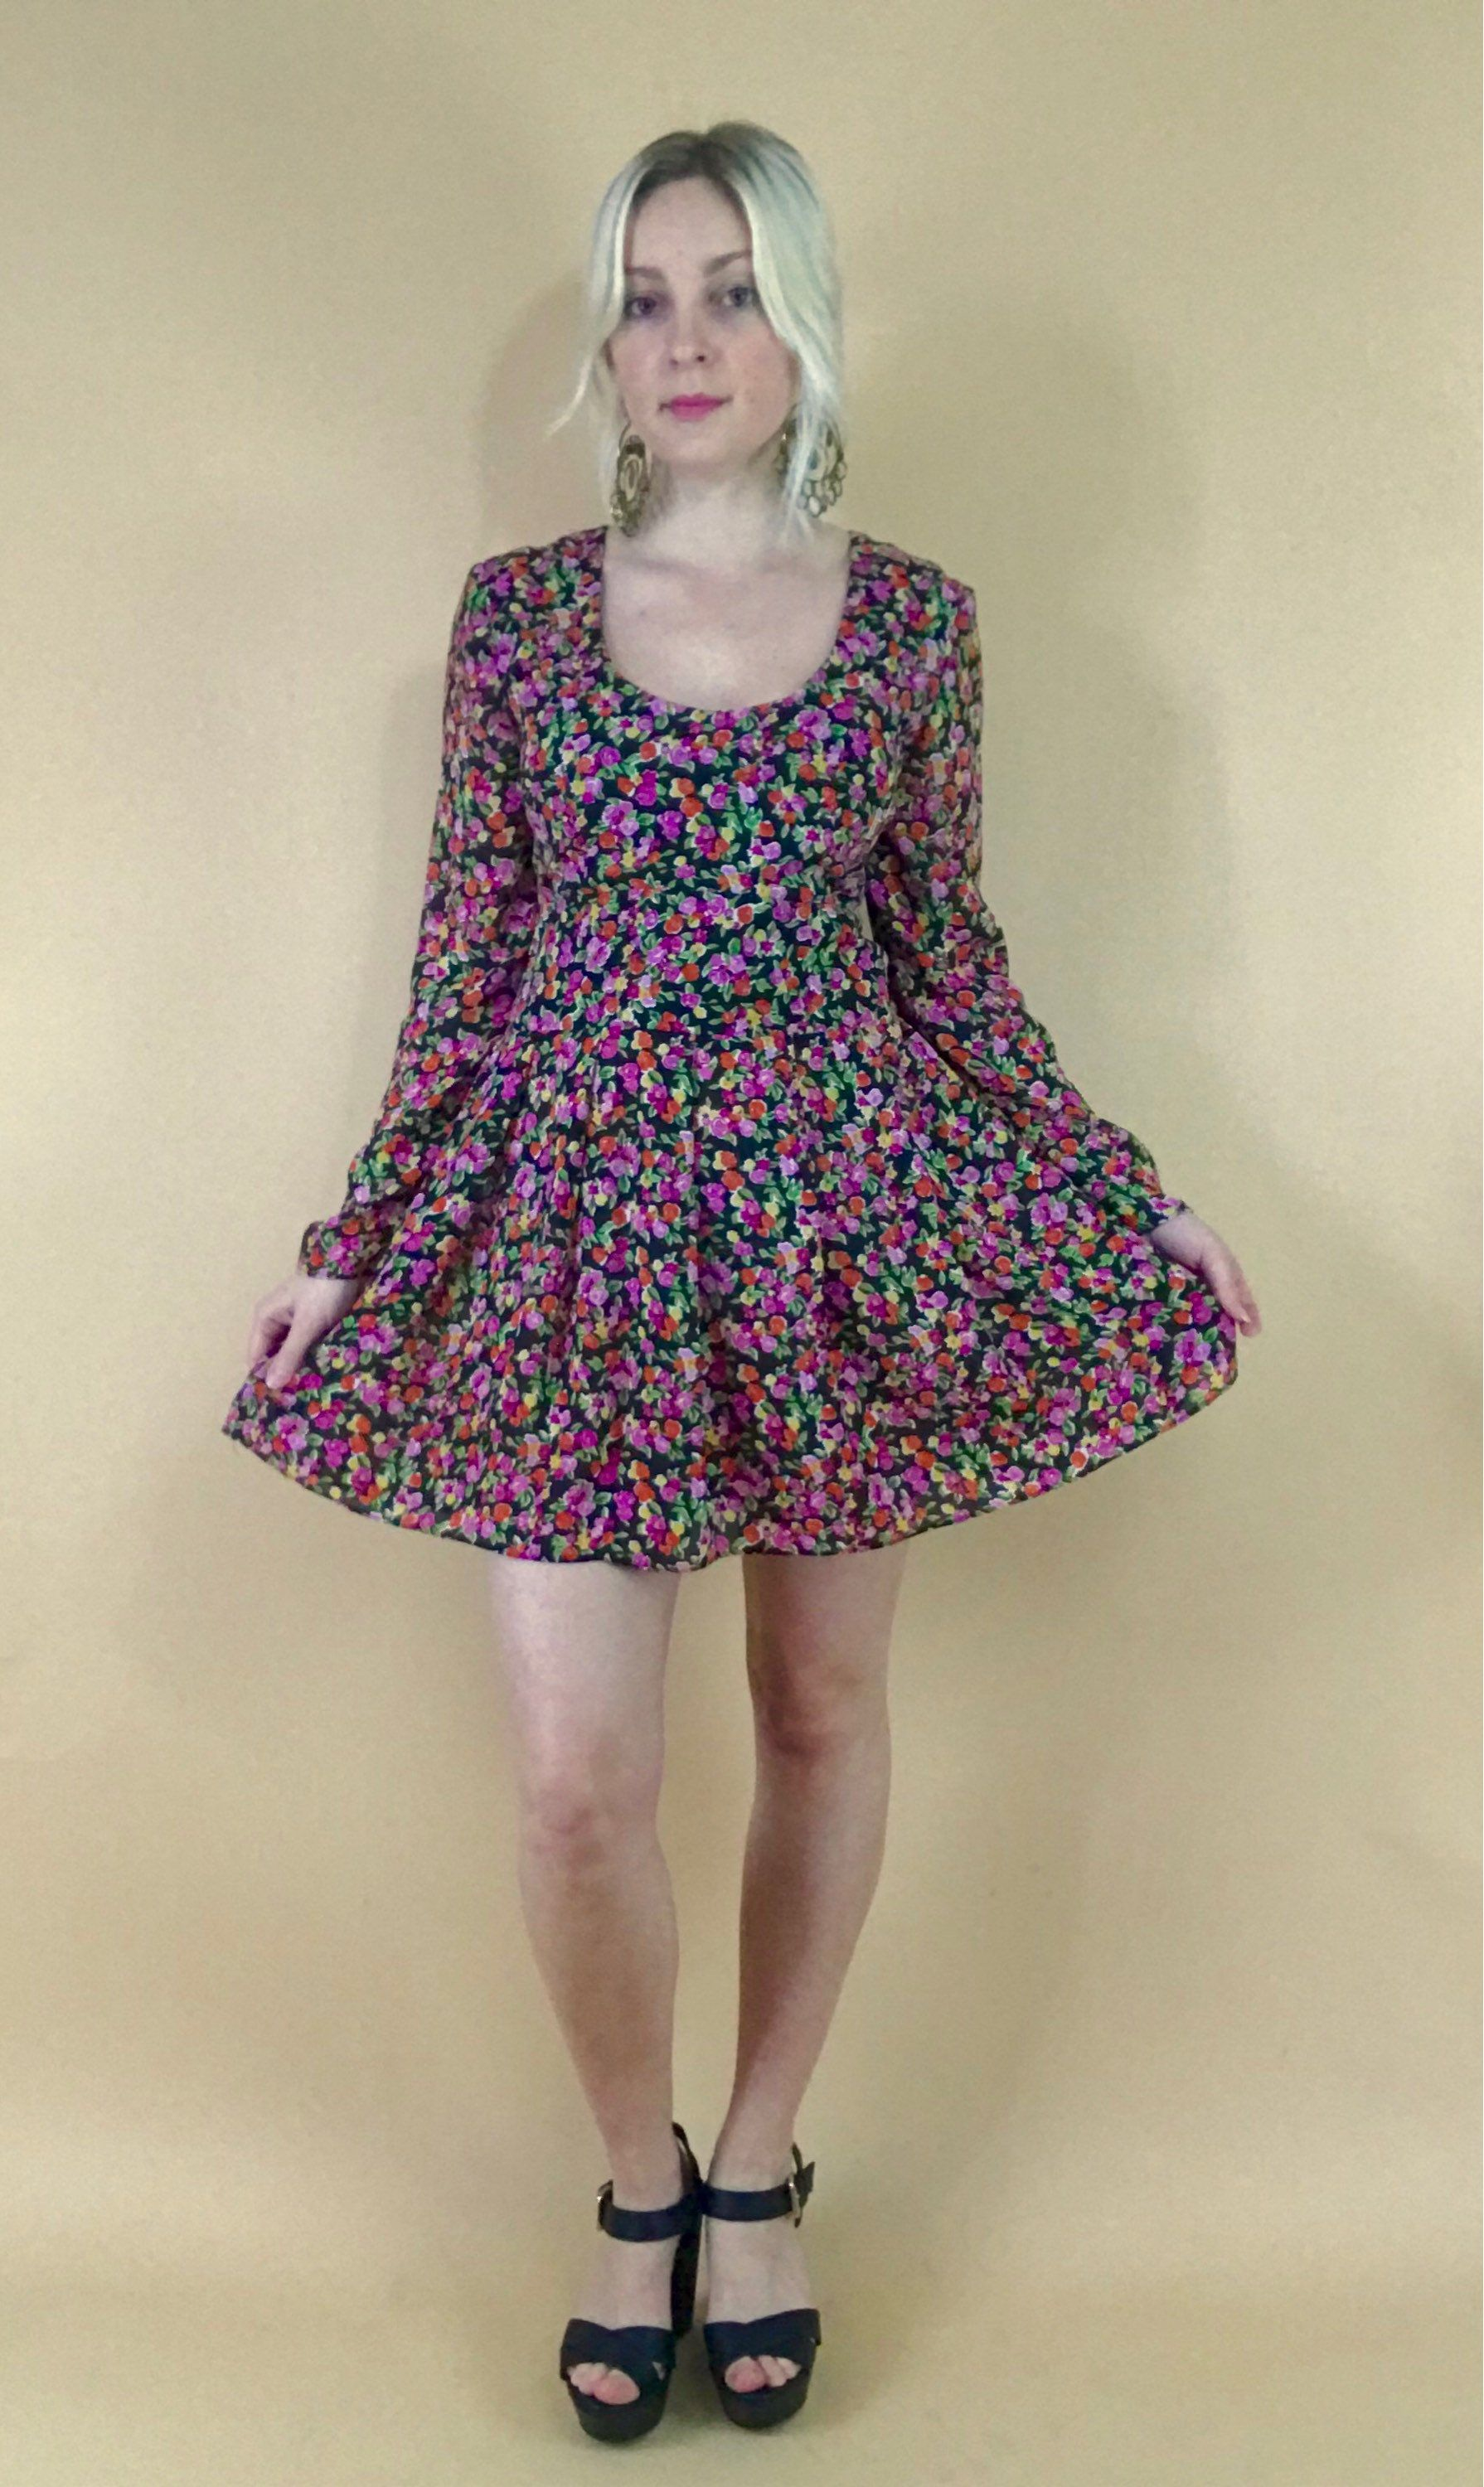 9dacd8abbf Vintage micro mini floral babydoll dress long sleeve 1990s grunge micro  floral garden print scoop neck empire waist dress 90s does 60s S M